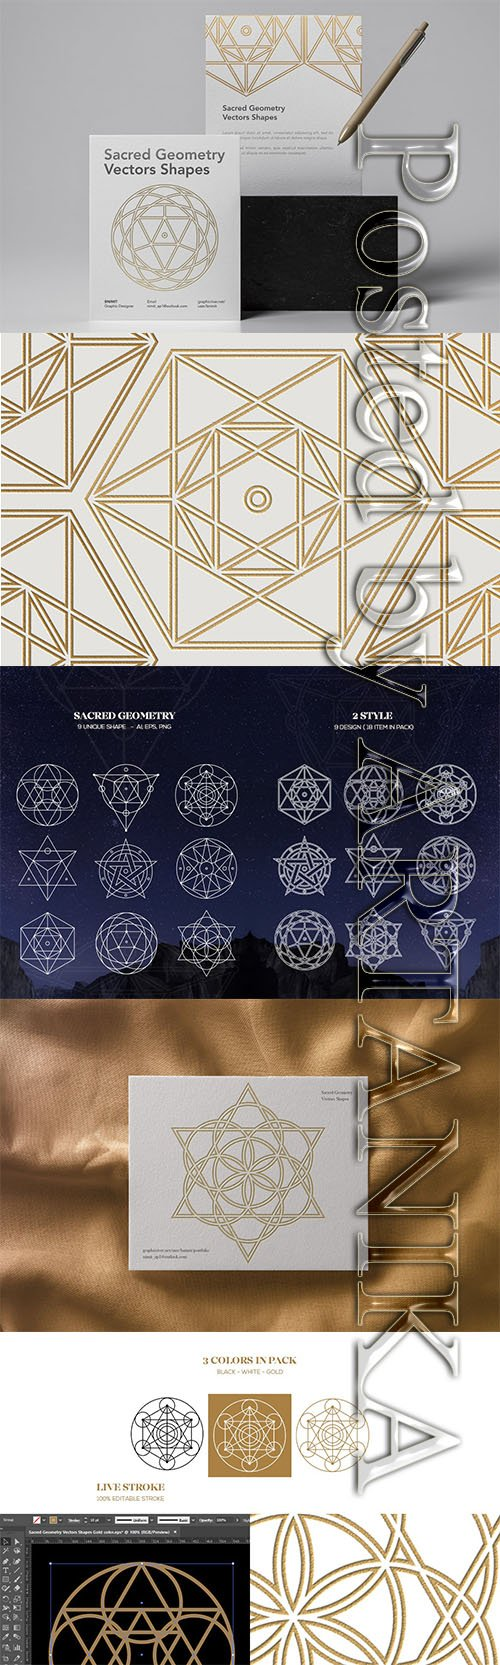 Sacred Geometry Vectors Shapes